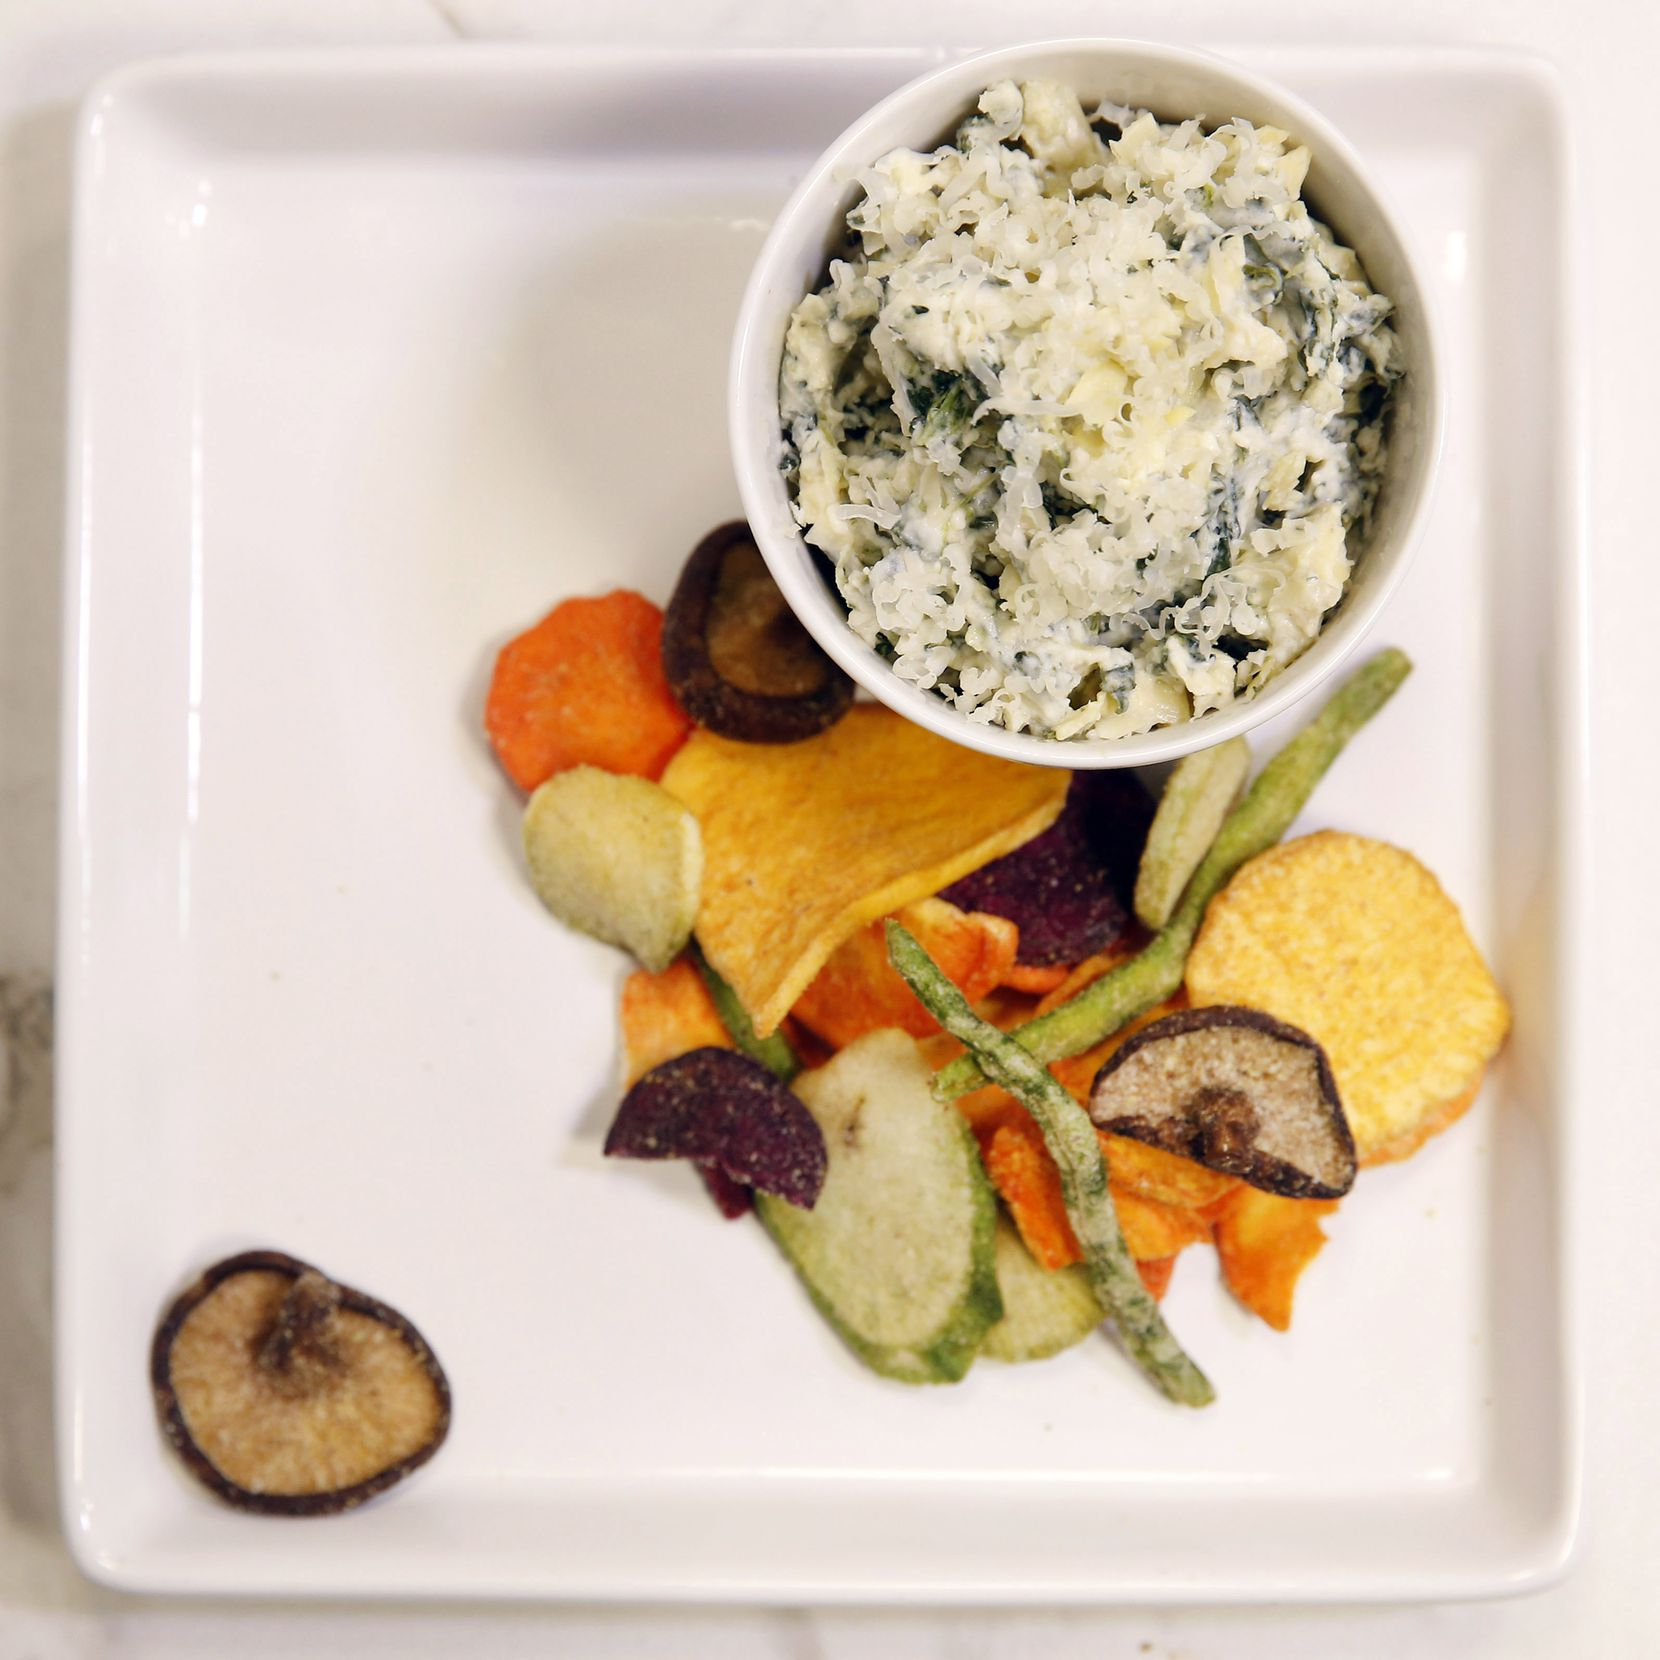 Houston's restaurant-style spinach and artichoke dip can be served with vegetable chips.